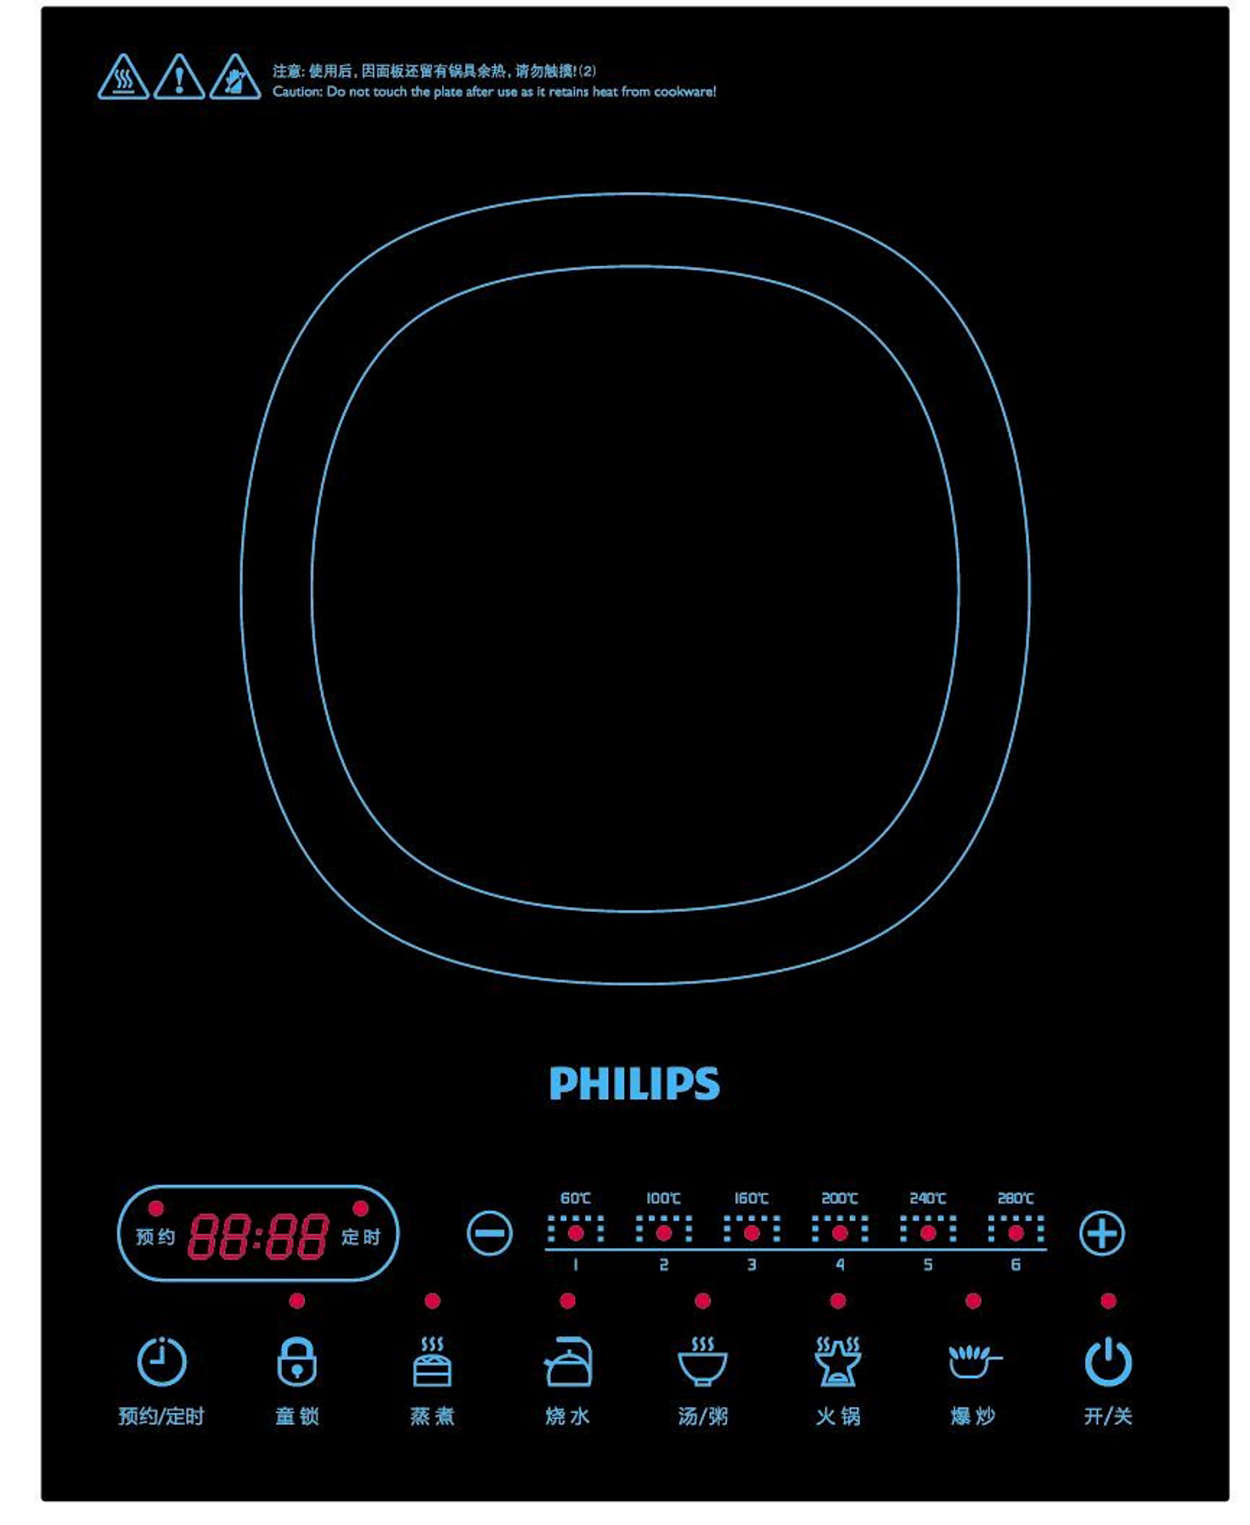 Viva Collection Premium Induction Cooker Hd4932 00 Philips Circuit Board Low Price Cookerb3 View Adds Life To Your Meals